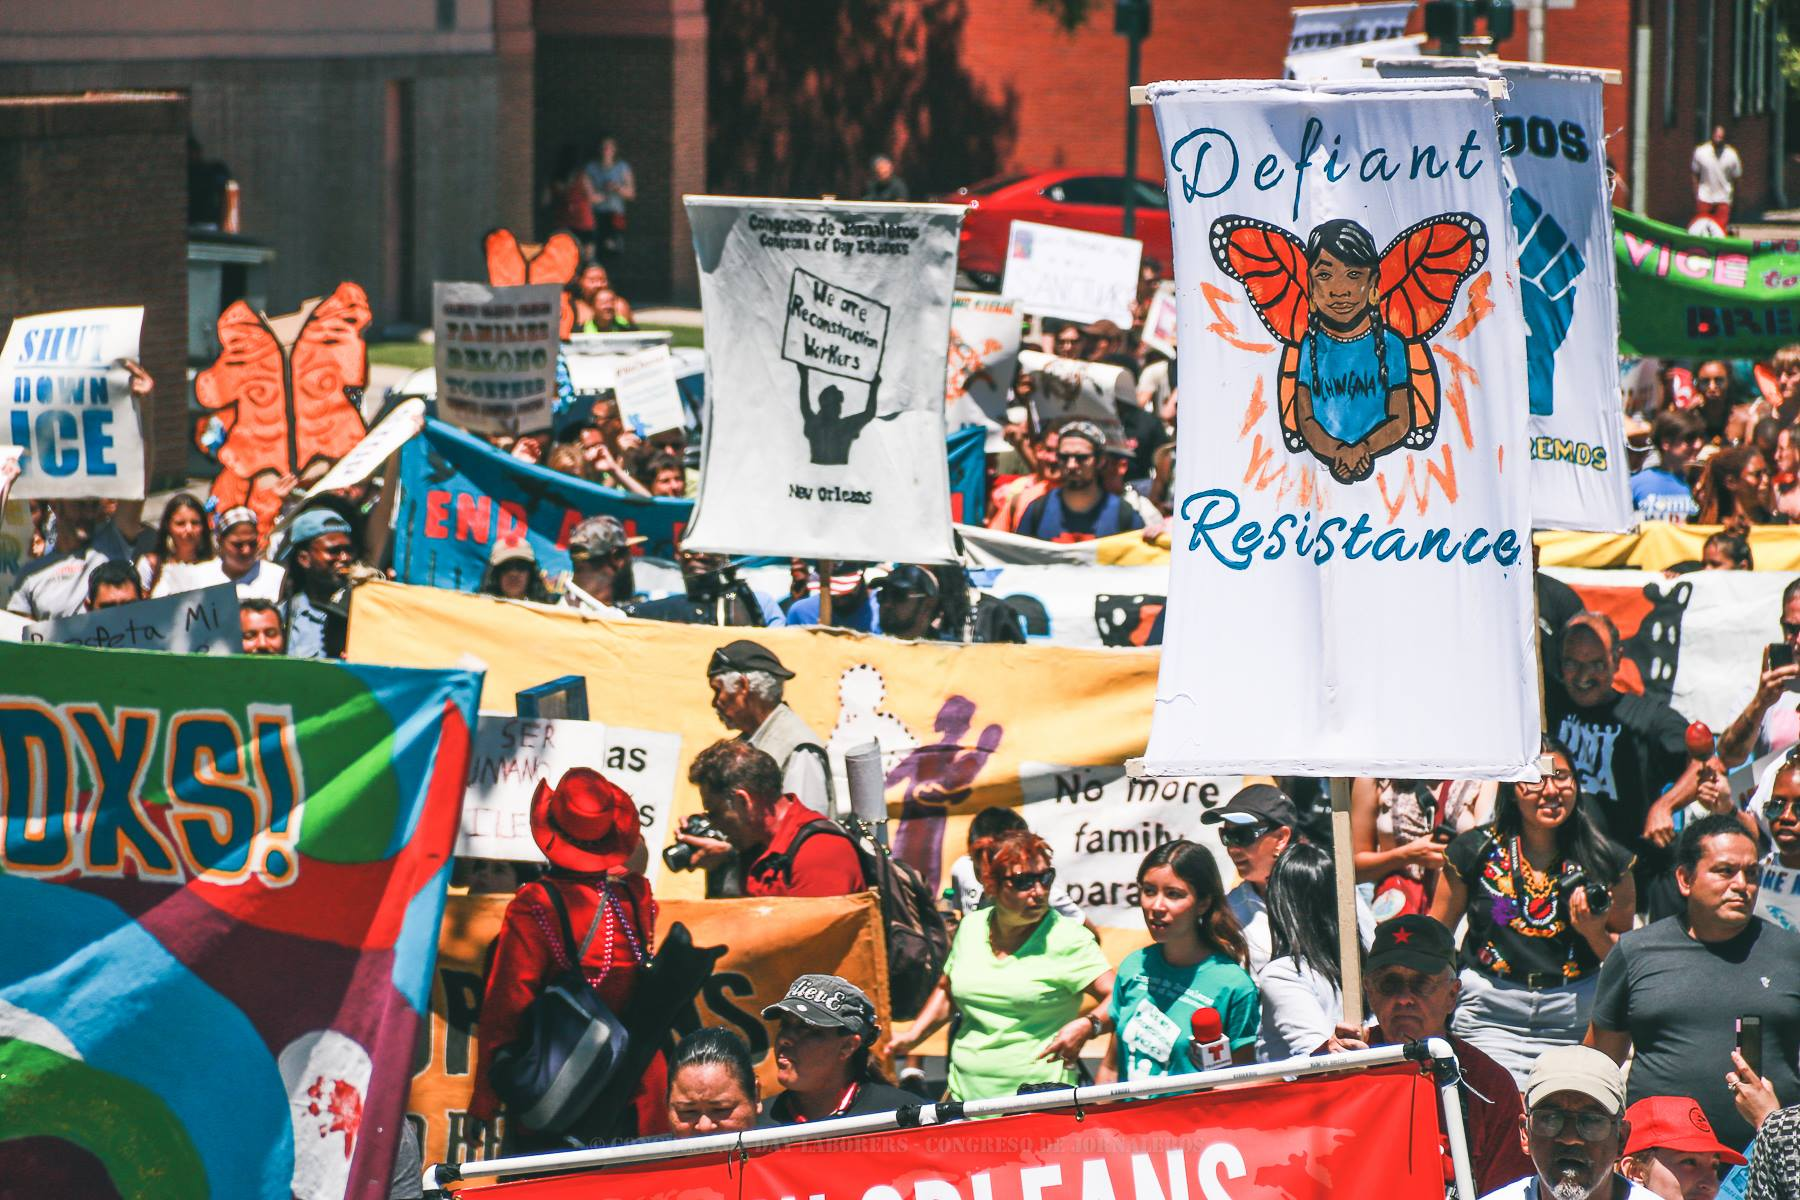 Examples of collaborative banner work with the  New Orleans Workers' Center for Racial Justice  and  Congreso de Jornaleros (Congress of Day Laborers) . Photo by  Fernando Lopez .